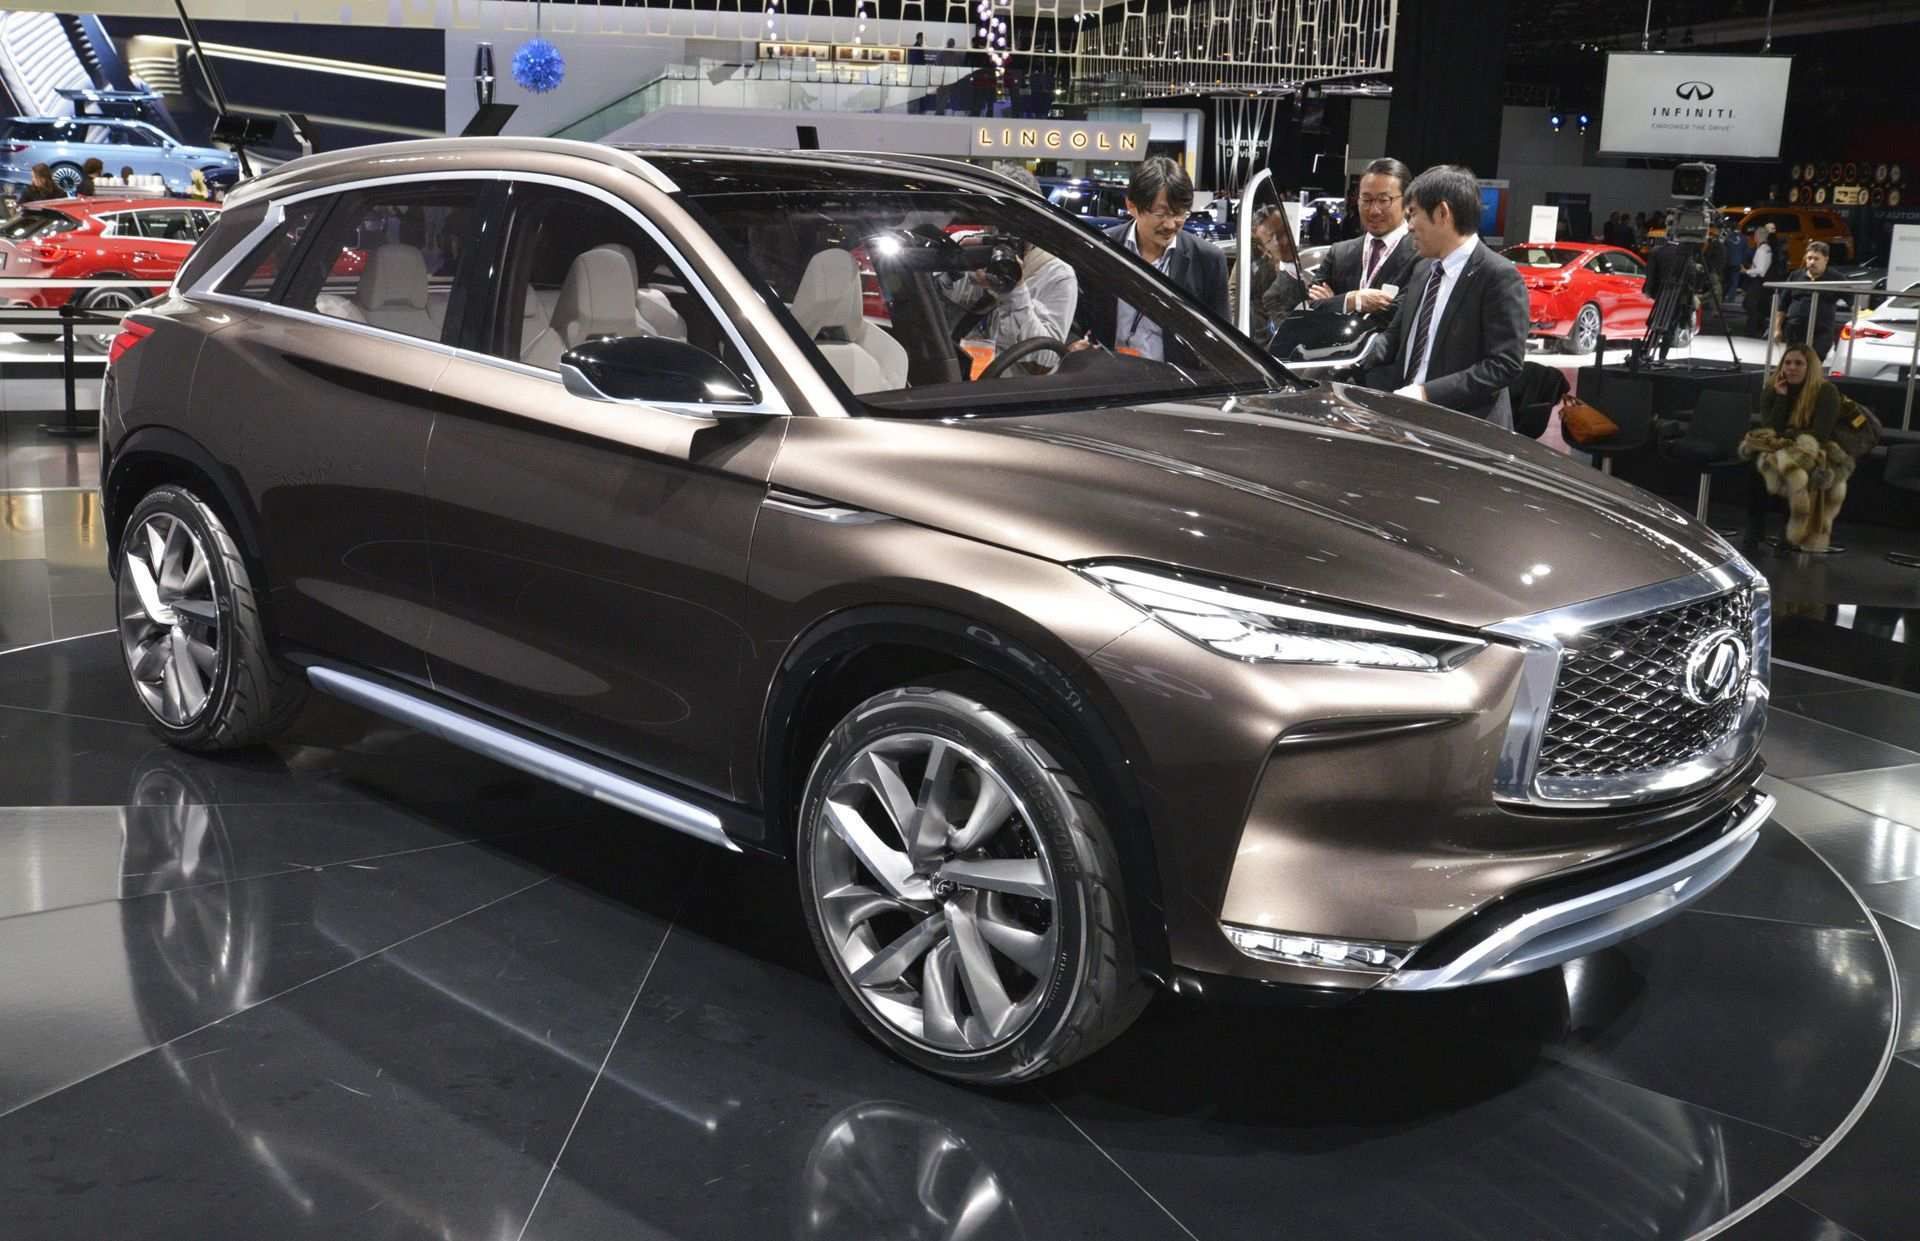 79 Gallery of 2020 Infiniti New Concept Ratings with 2020 Infiniti New Concept